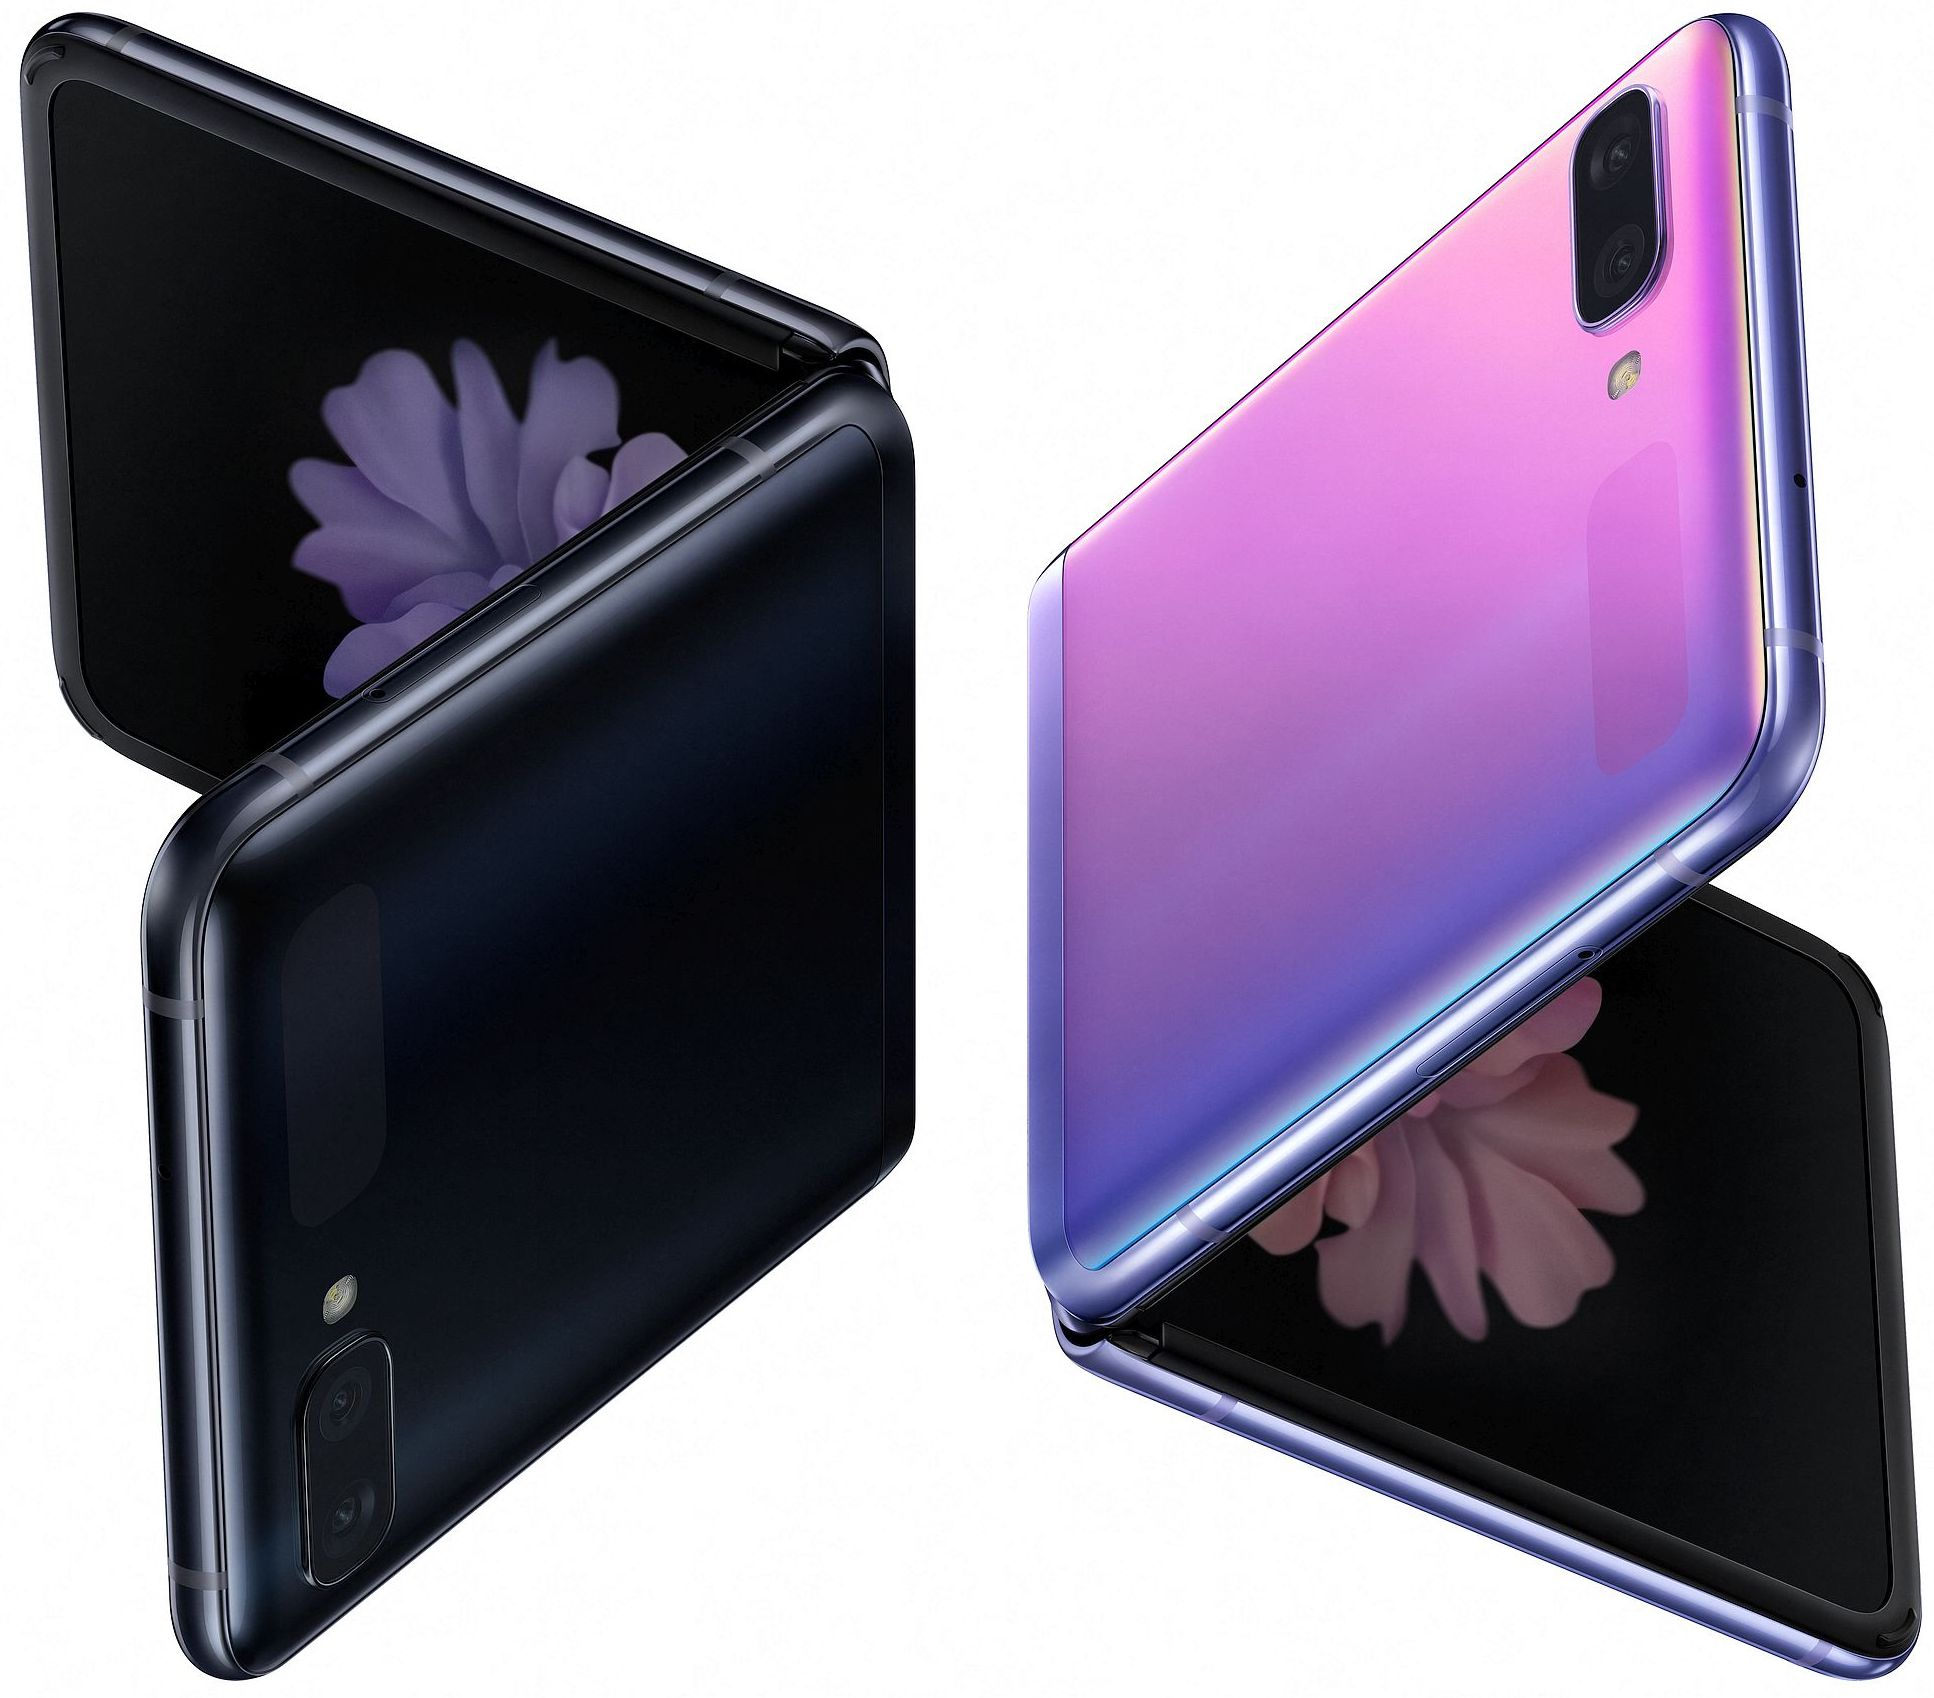 Official images and specs of Samsung Galaxy Z Flip leaked online, it isn't as expensive as the Galaxy Fold 4